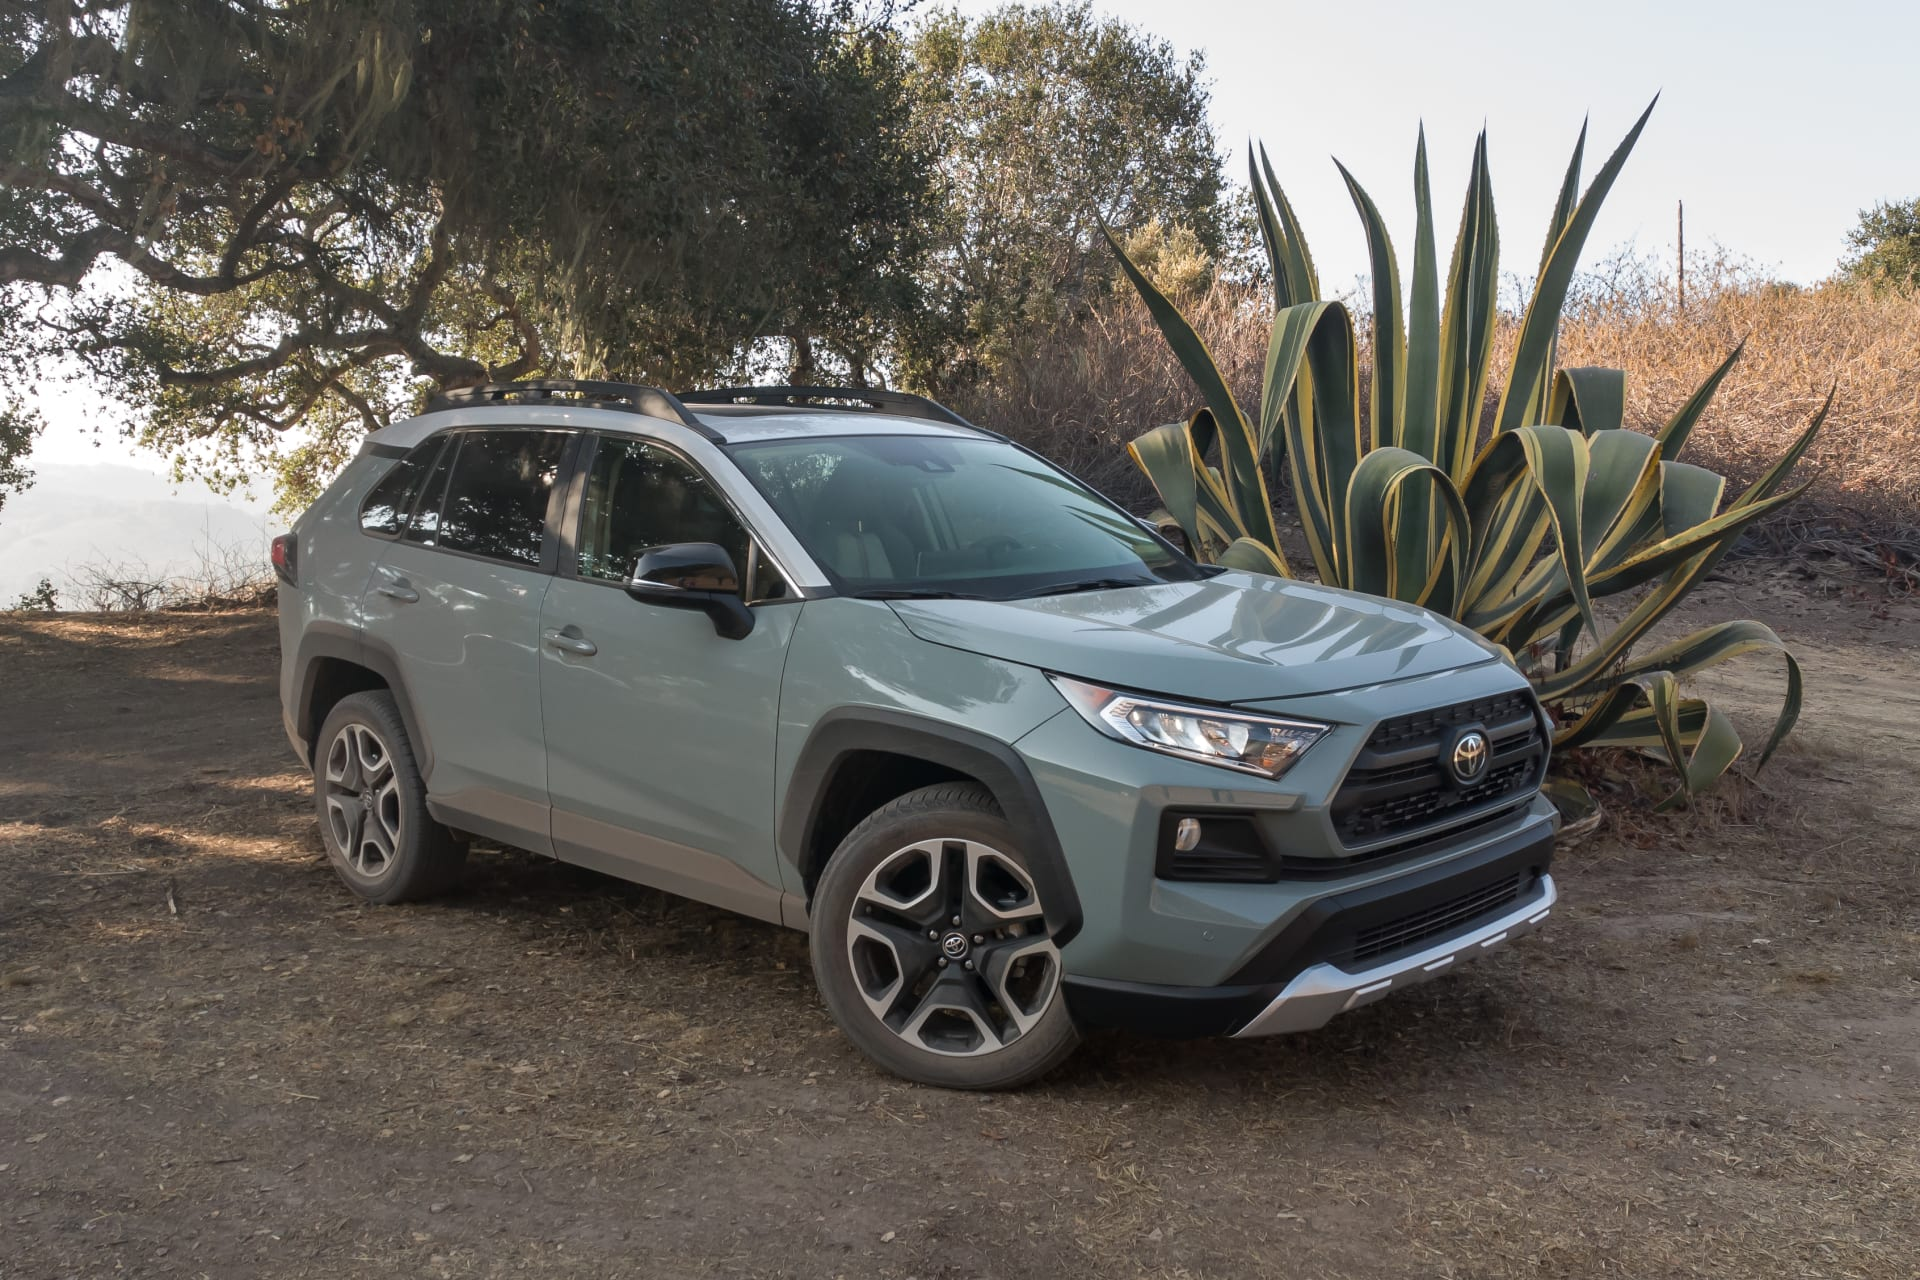 2019 Toyota RAV4: 5 Things We Like (and 5 Not So Much